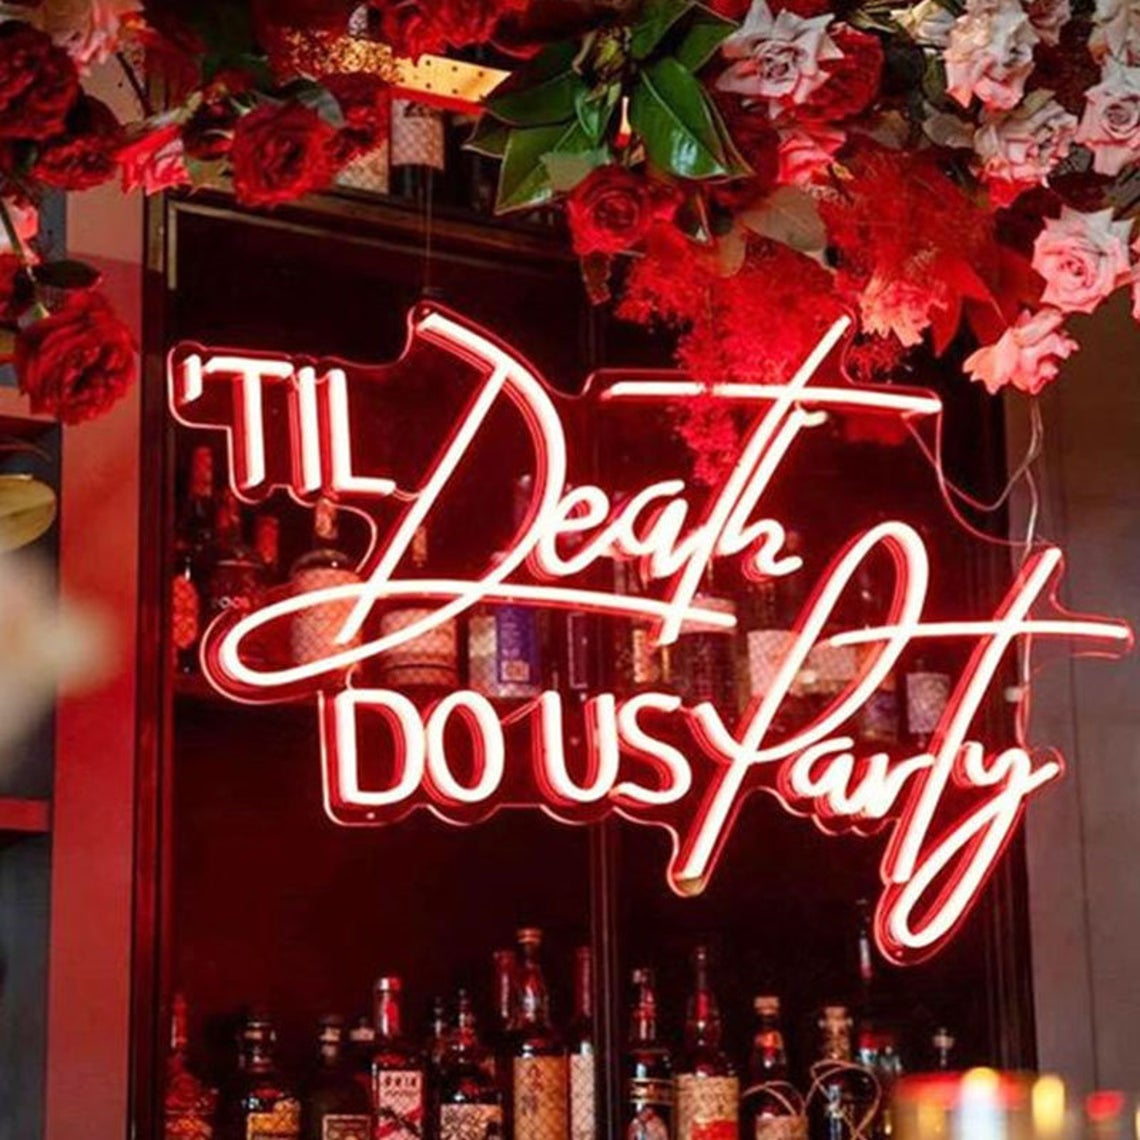 Til Death Do Us Party Neon Light